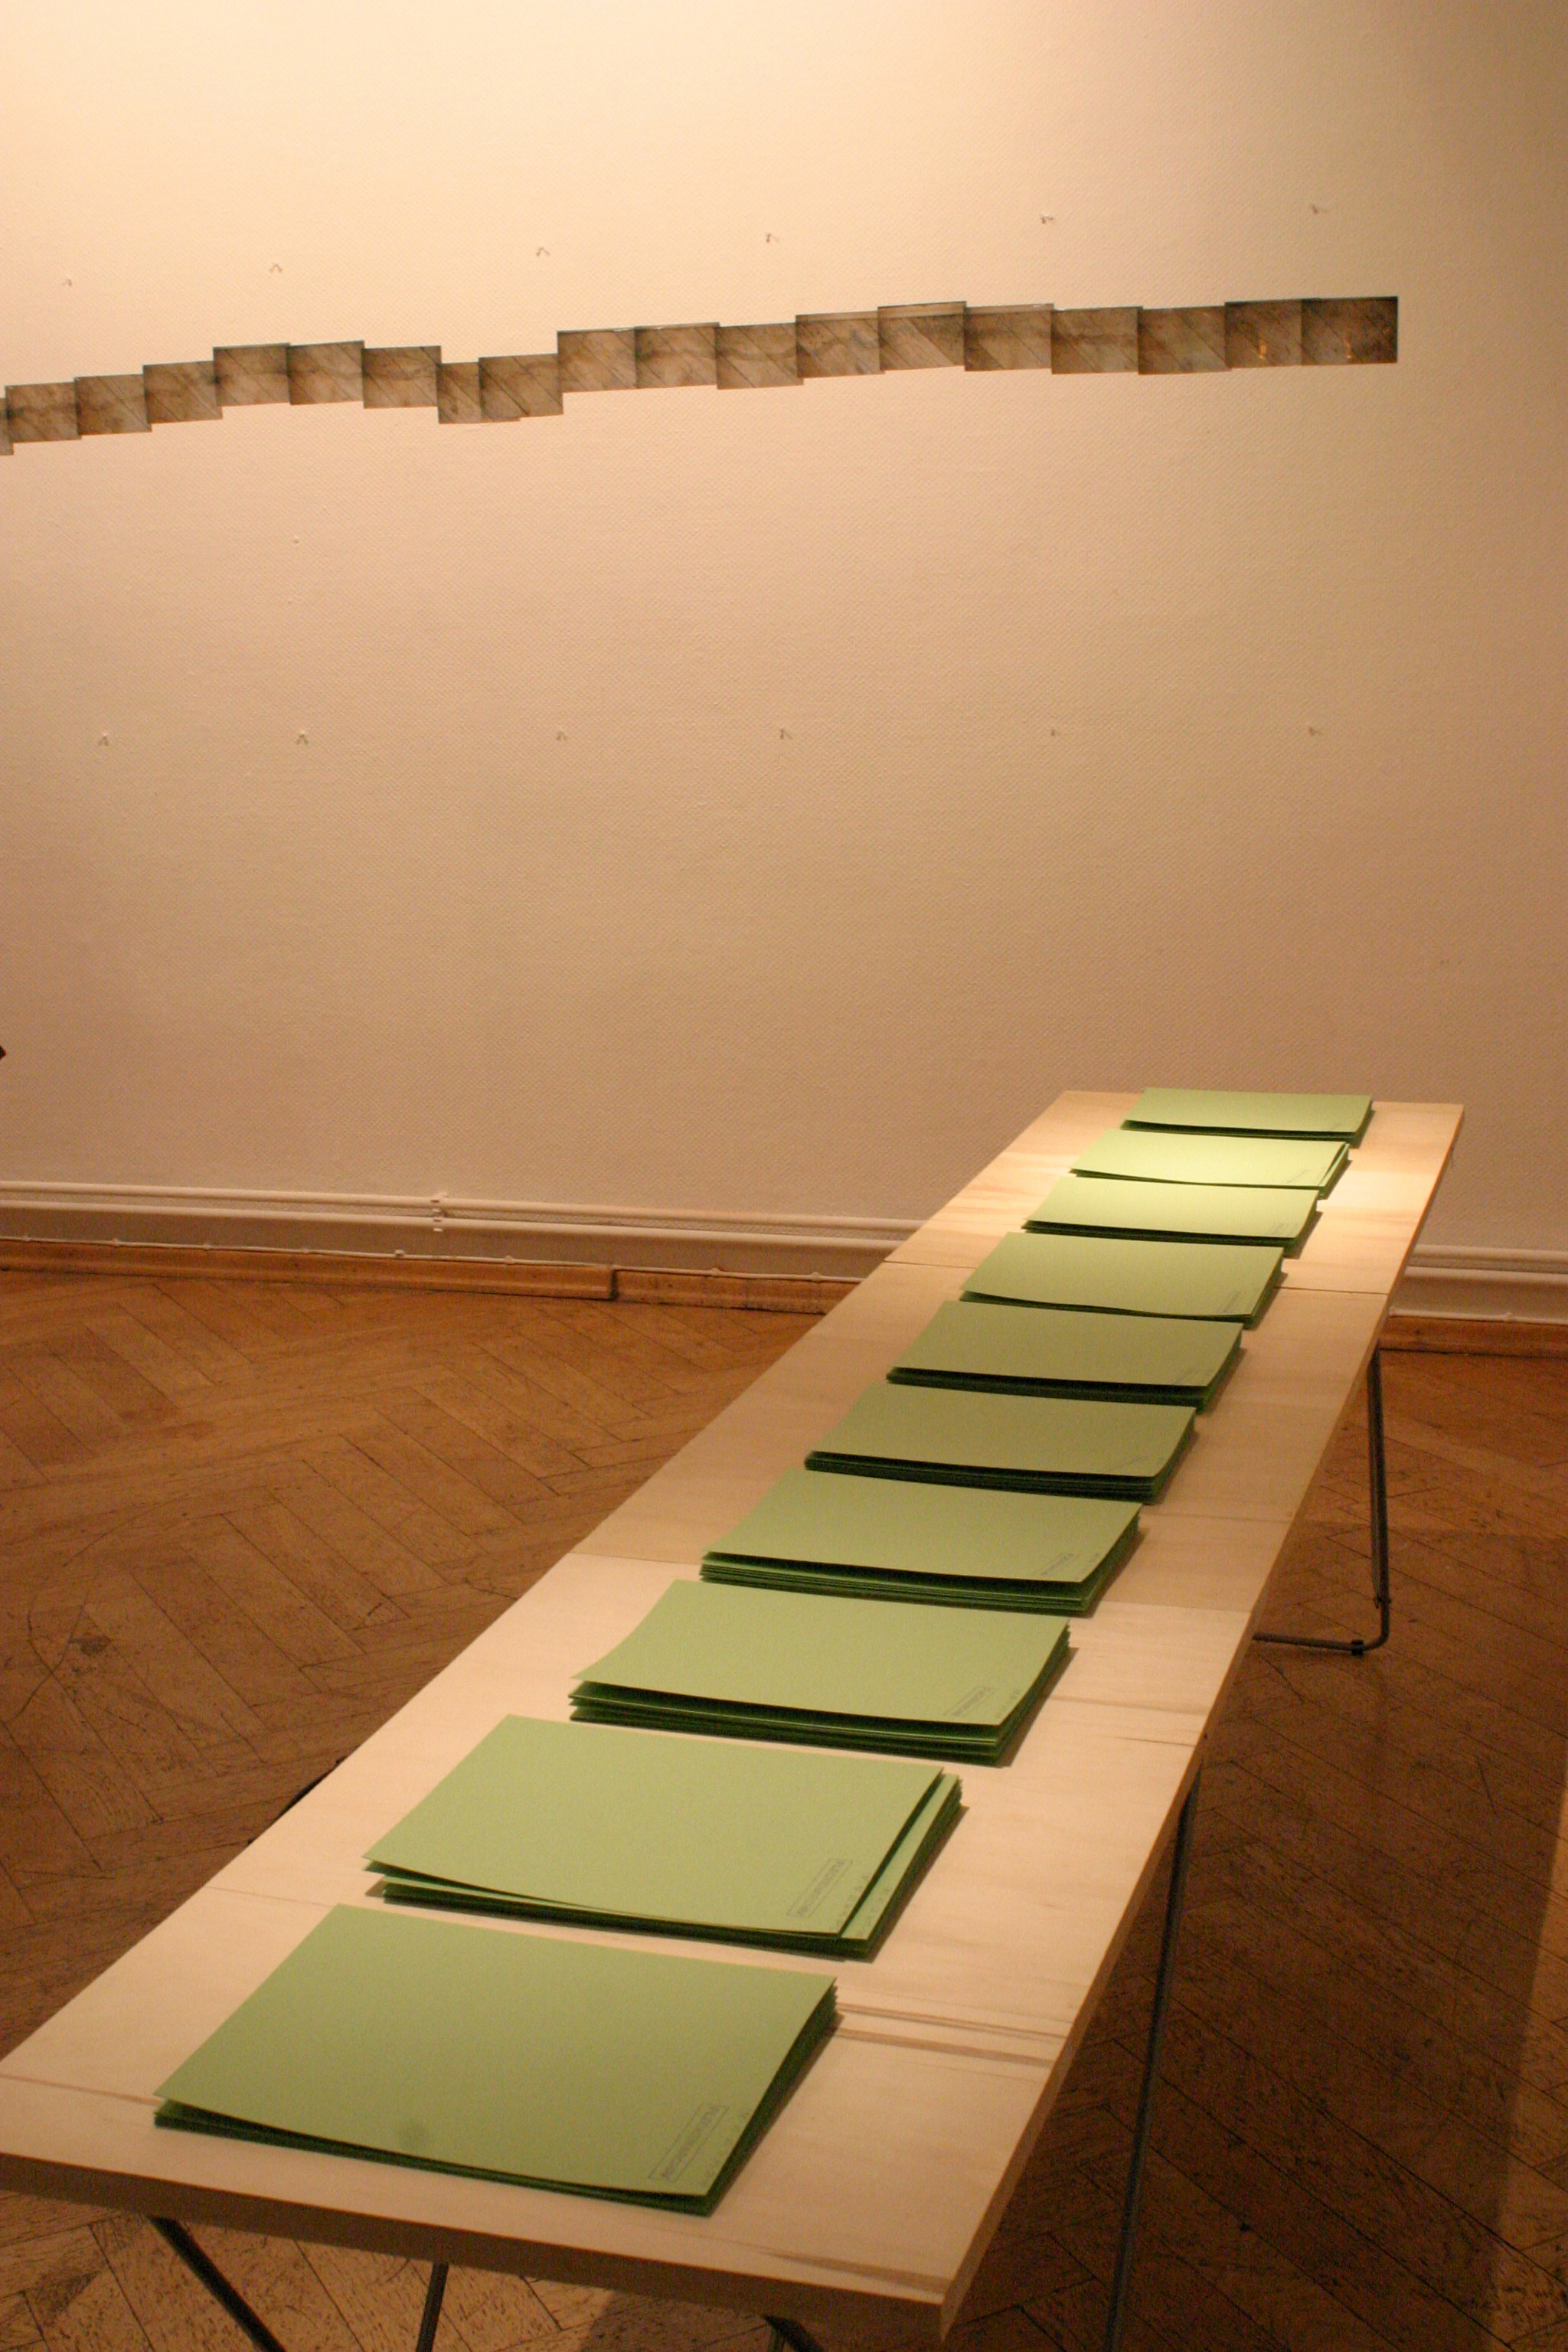 Installation and Photo by Janine Eggert